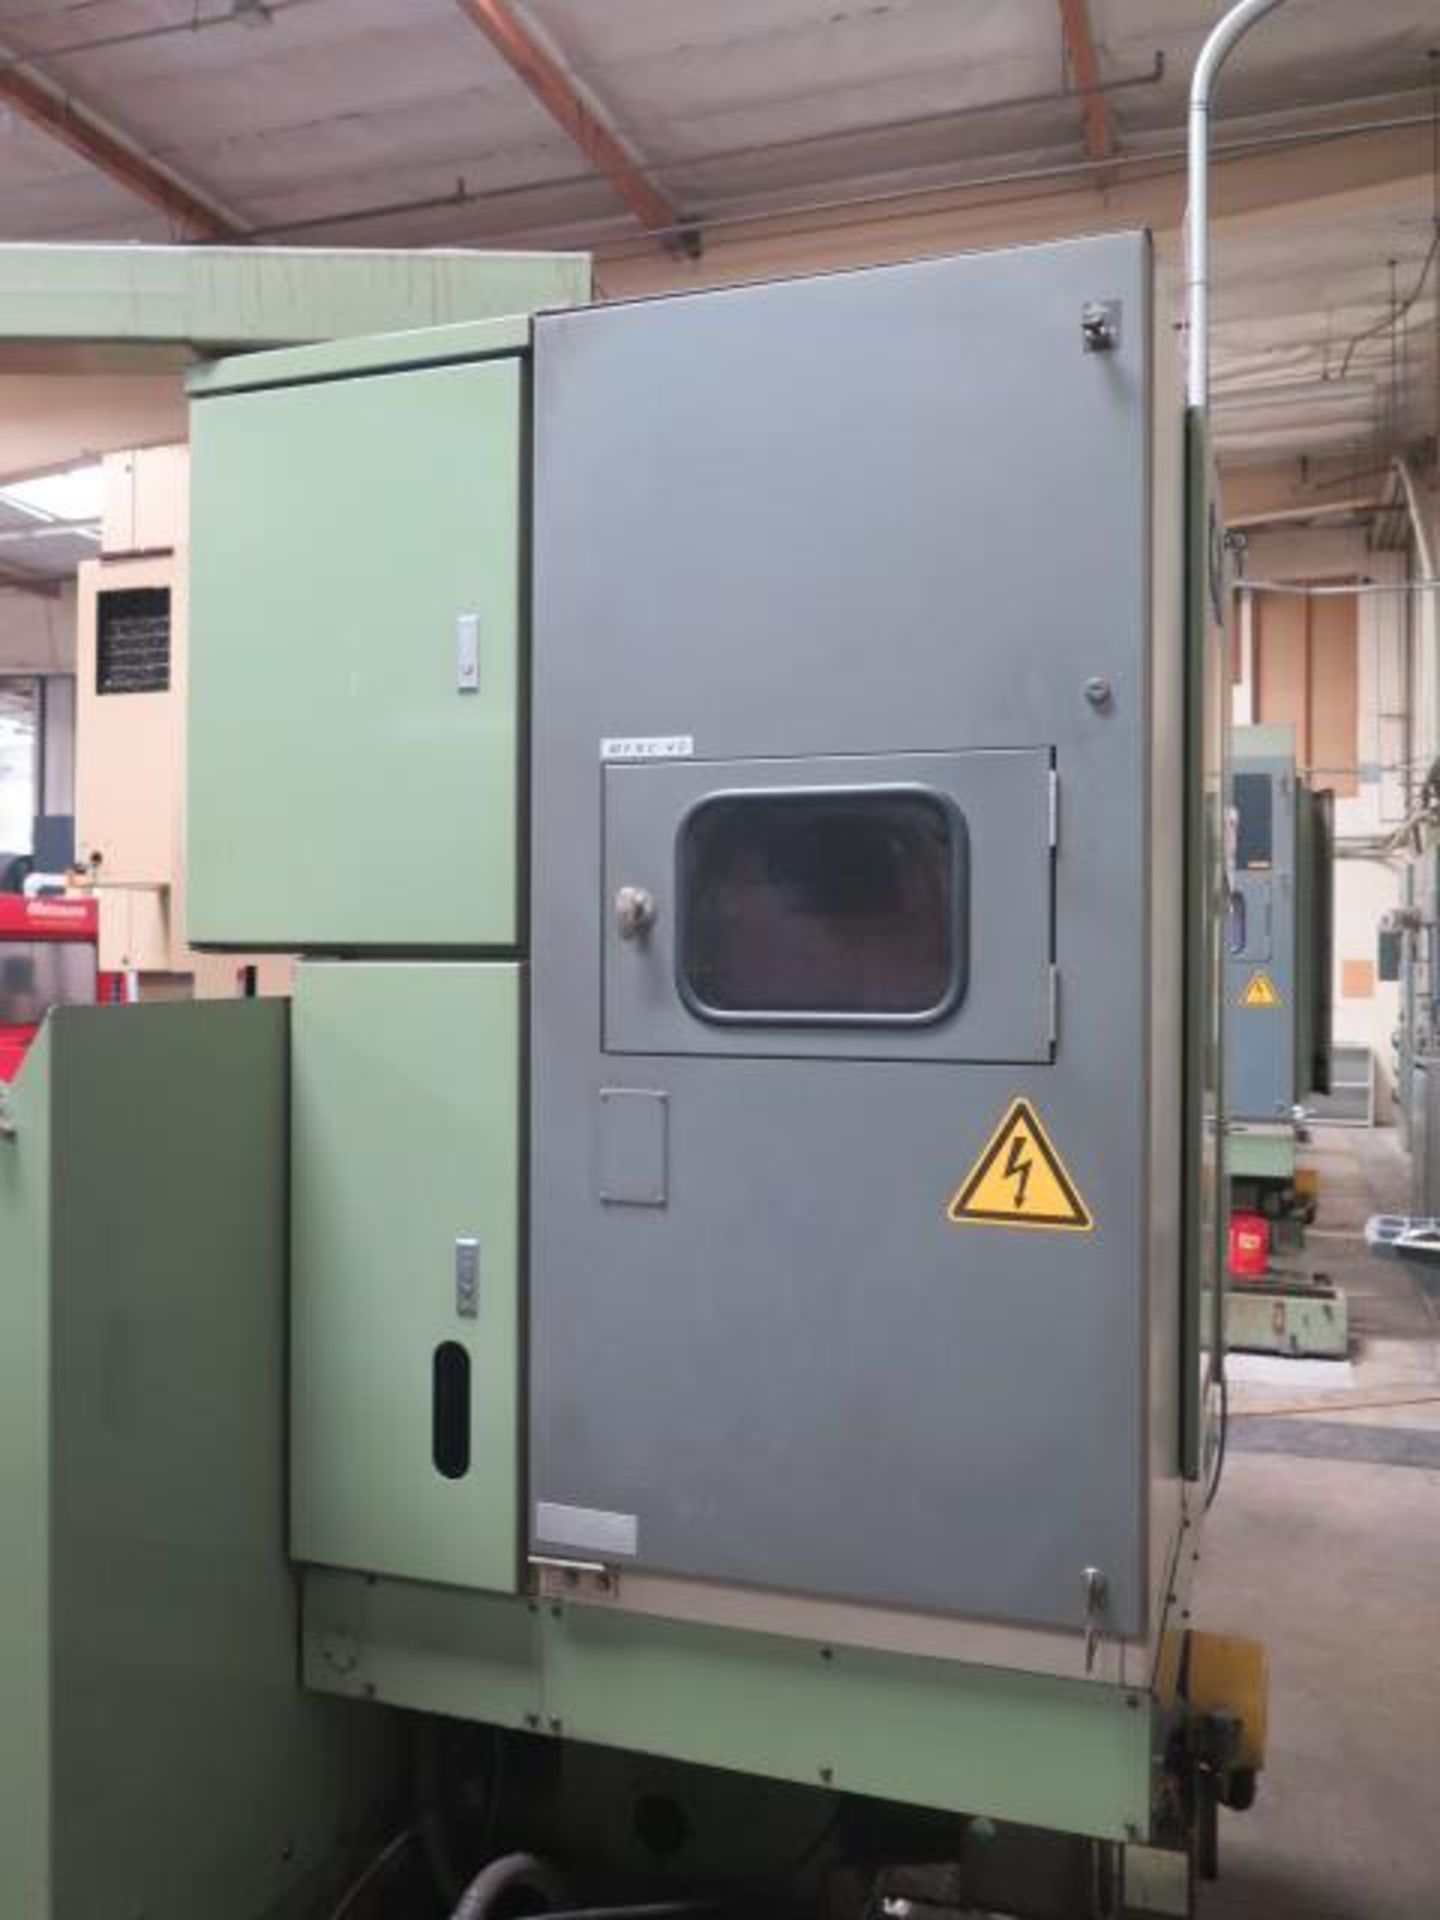 Moti Seiki MV-35/40 CNC VMC s/n 759 w/ Fanuc System 11M Controls, 20-Station ATC, SOLD AS IS - Image 12 of 14